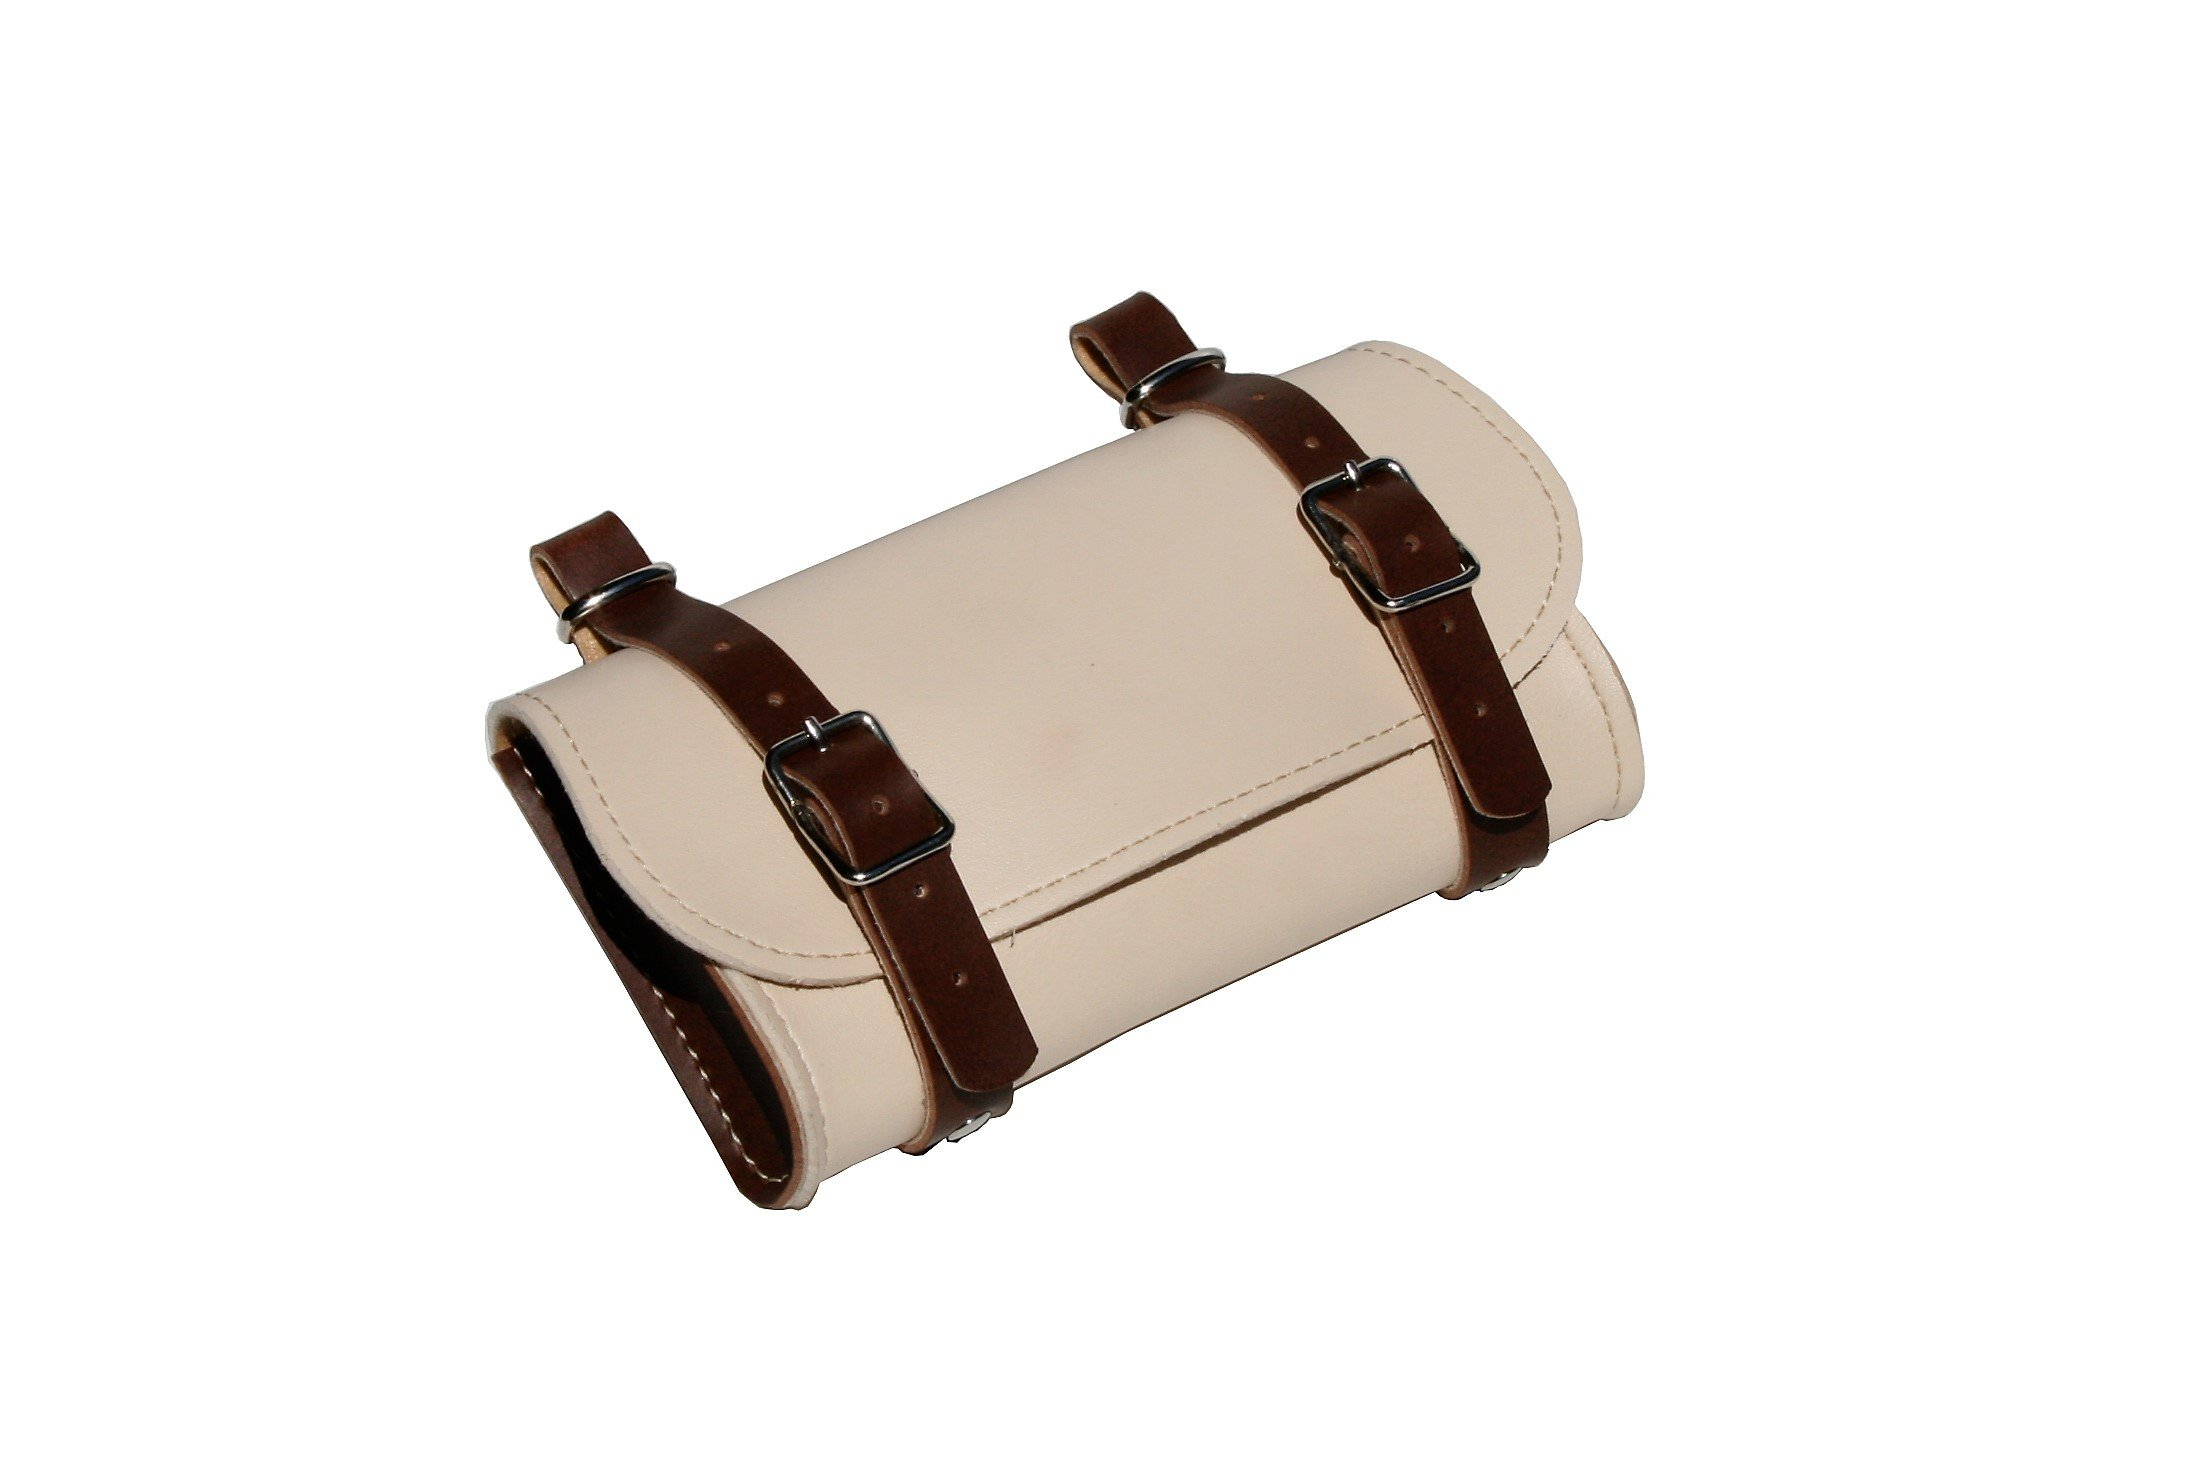 Rear Saddle Bicycle Bag Classic. Bike pannier. Cycling storage. Vintage Style. Simil Leather. Color: Cream/Brown. 100% MADE IN ITALY